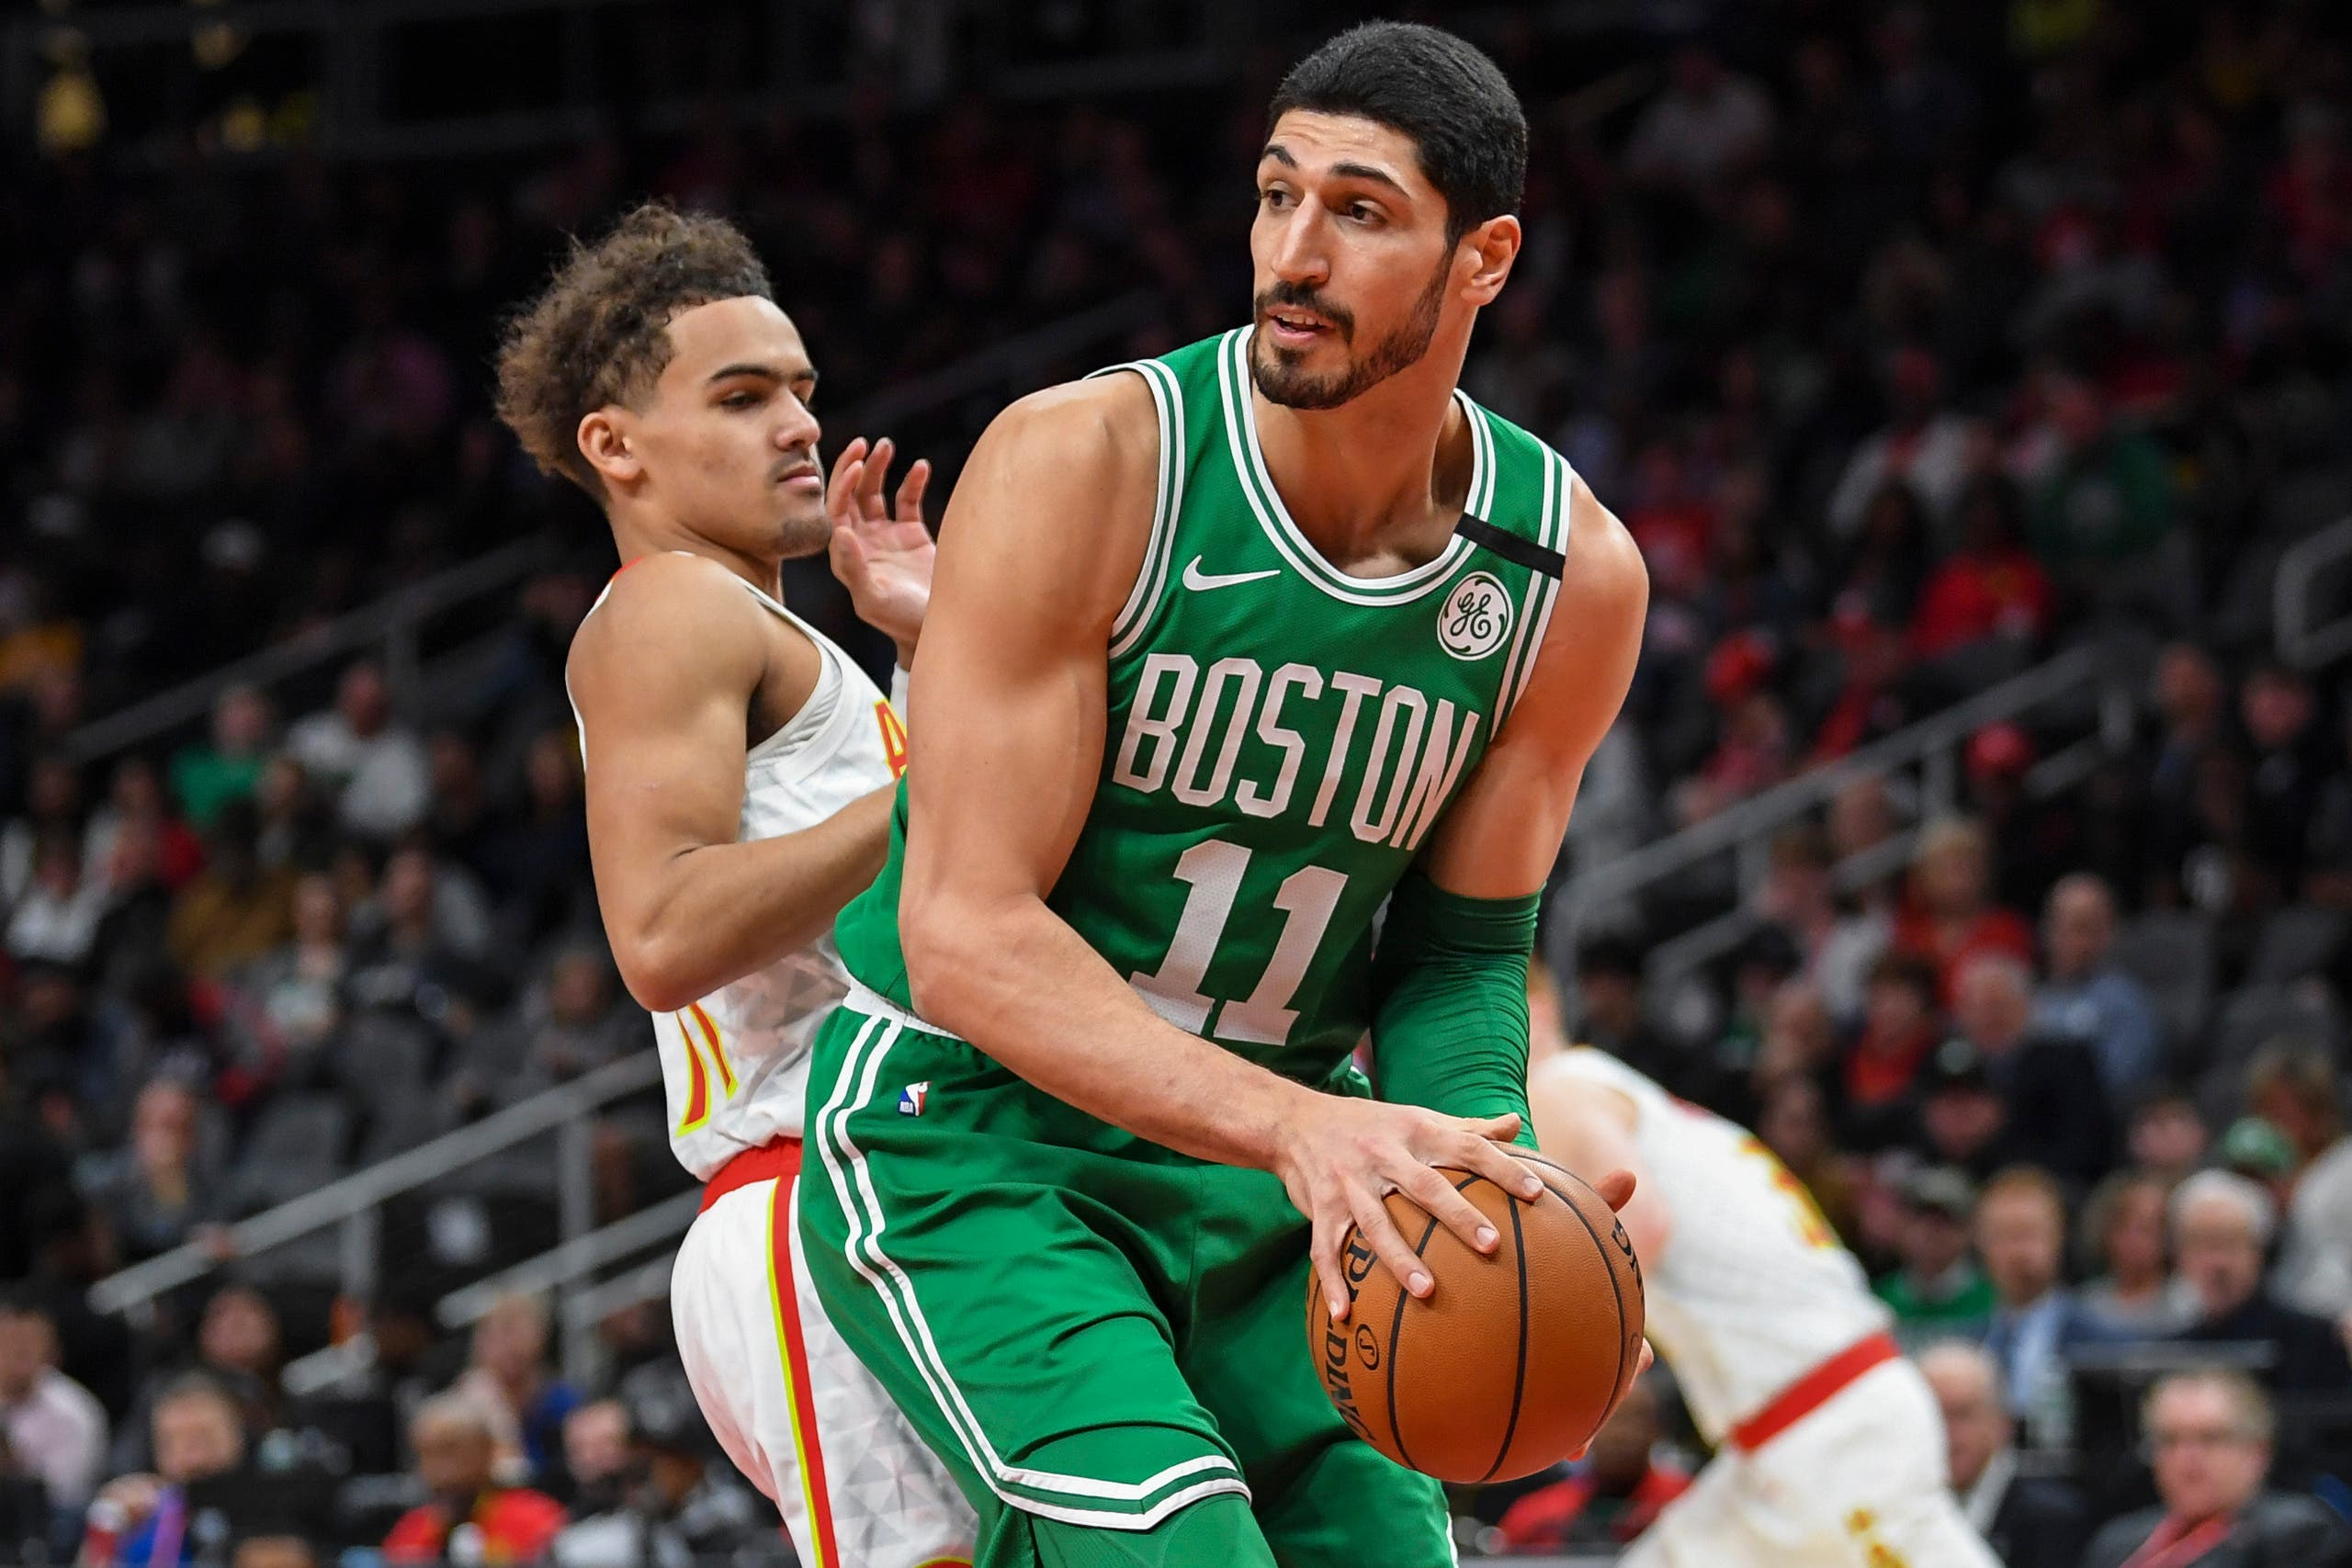 Boston Celtics center Enes Kanter (11) controls the ball against Atlanta Hawks guard Trae Young (left) on February 4, 2020. (Reuters)